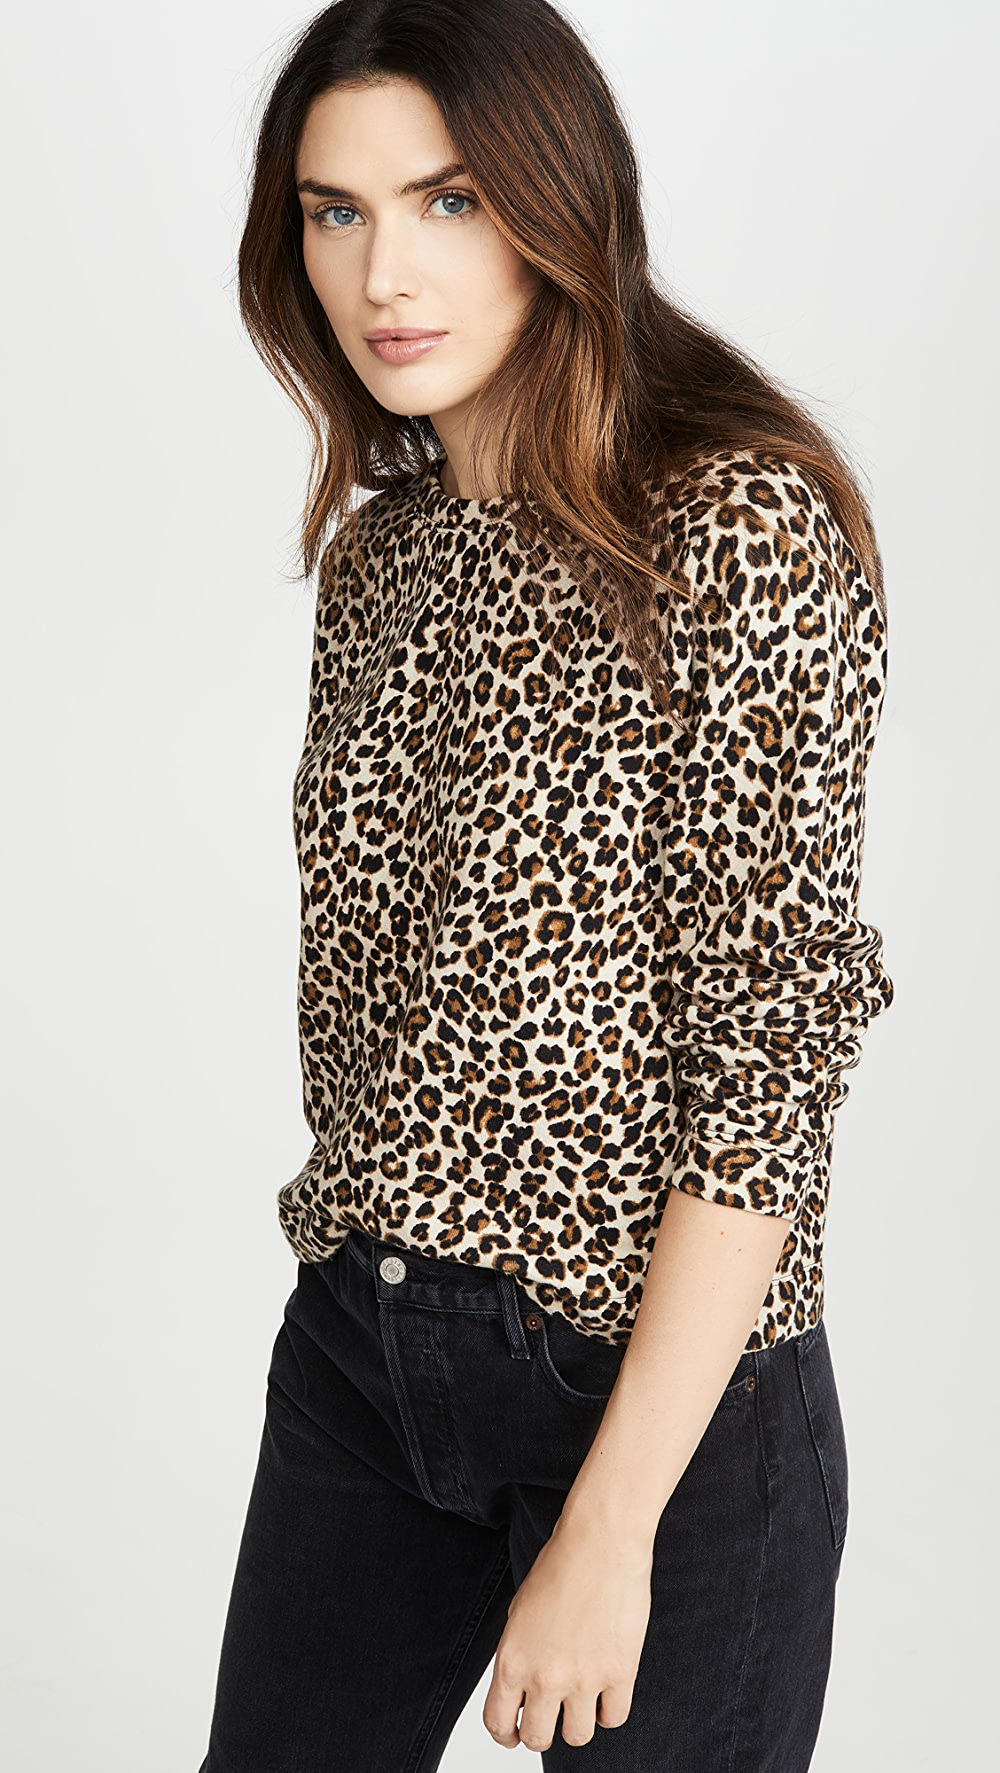 Beautiful Velvet - Jazz Sweatshirt To Clear Out Annoyance And Quench Thirst